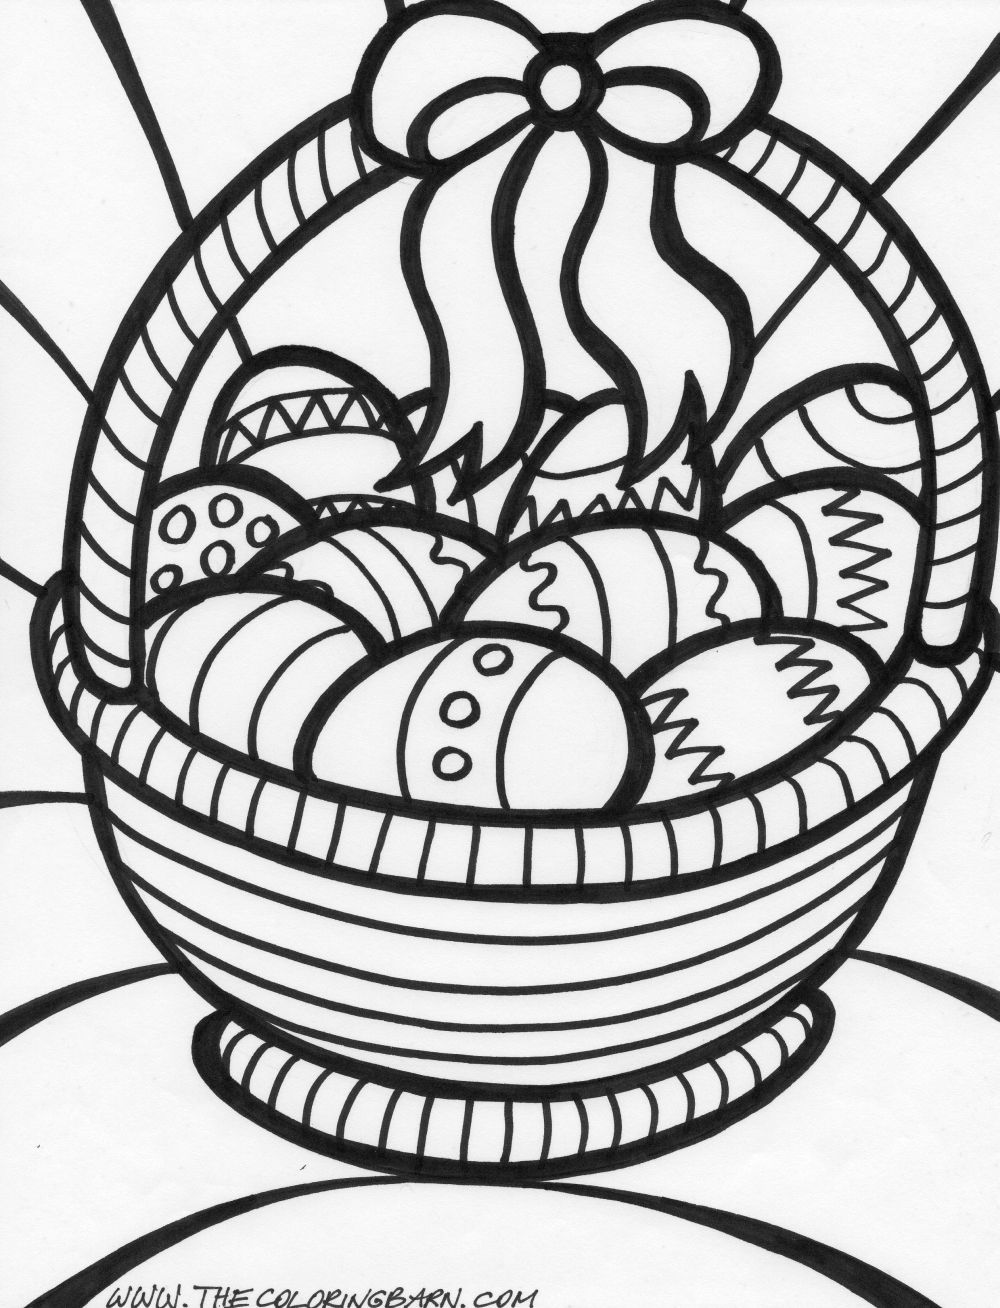 1000x1308 Eater Coloring Pages, Printable Easter Egg Coloring Pages